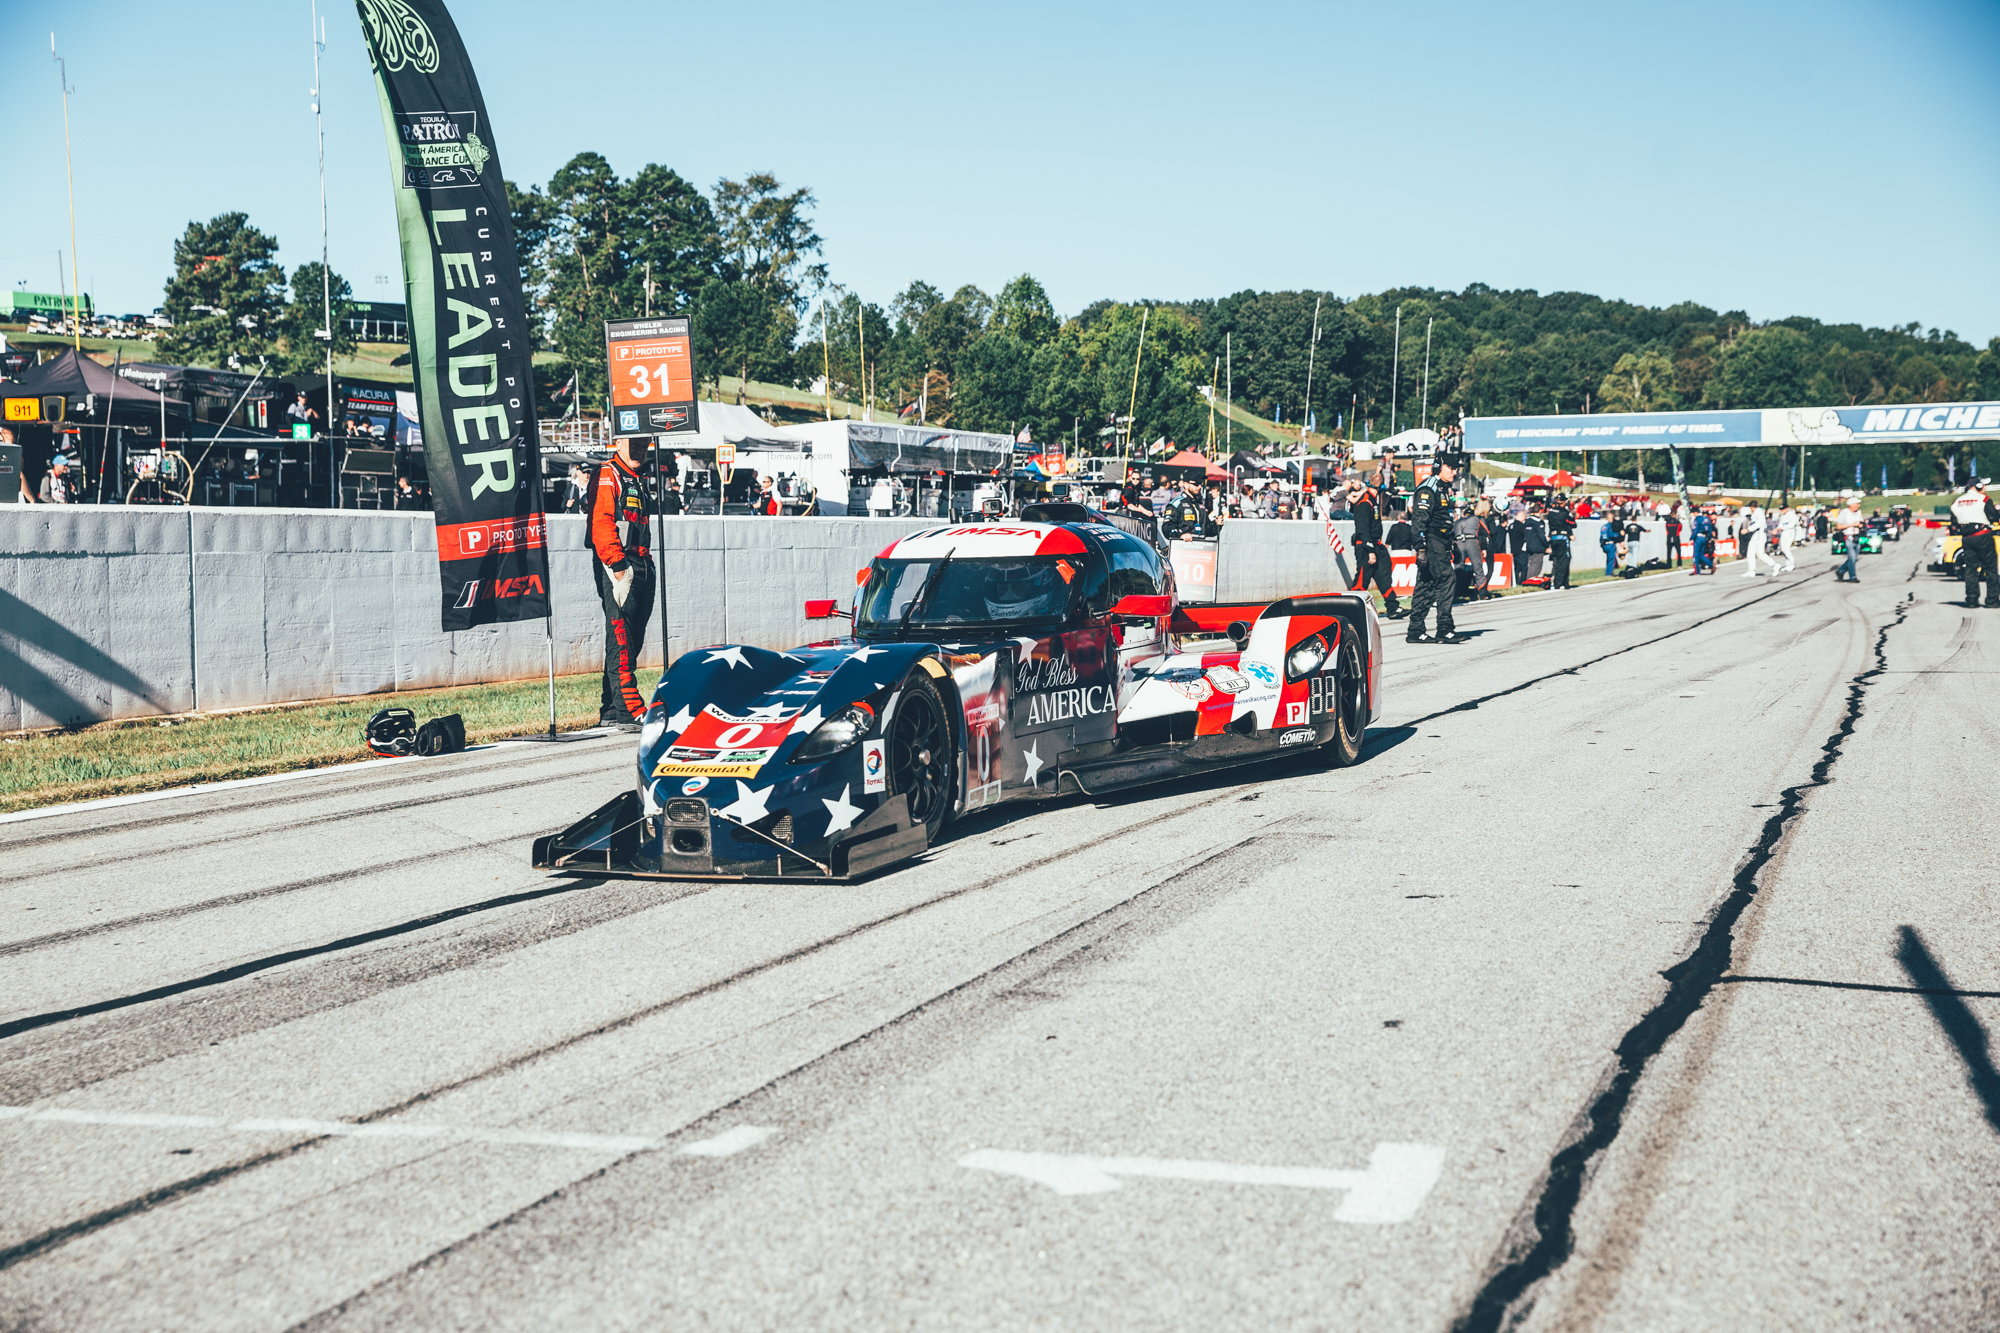 What is the story behind the DeltaWing?